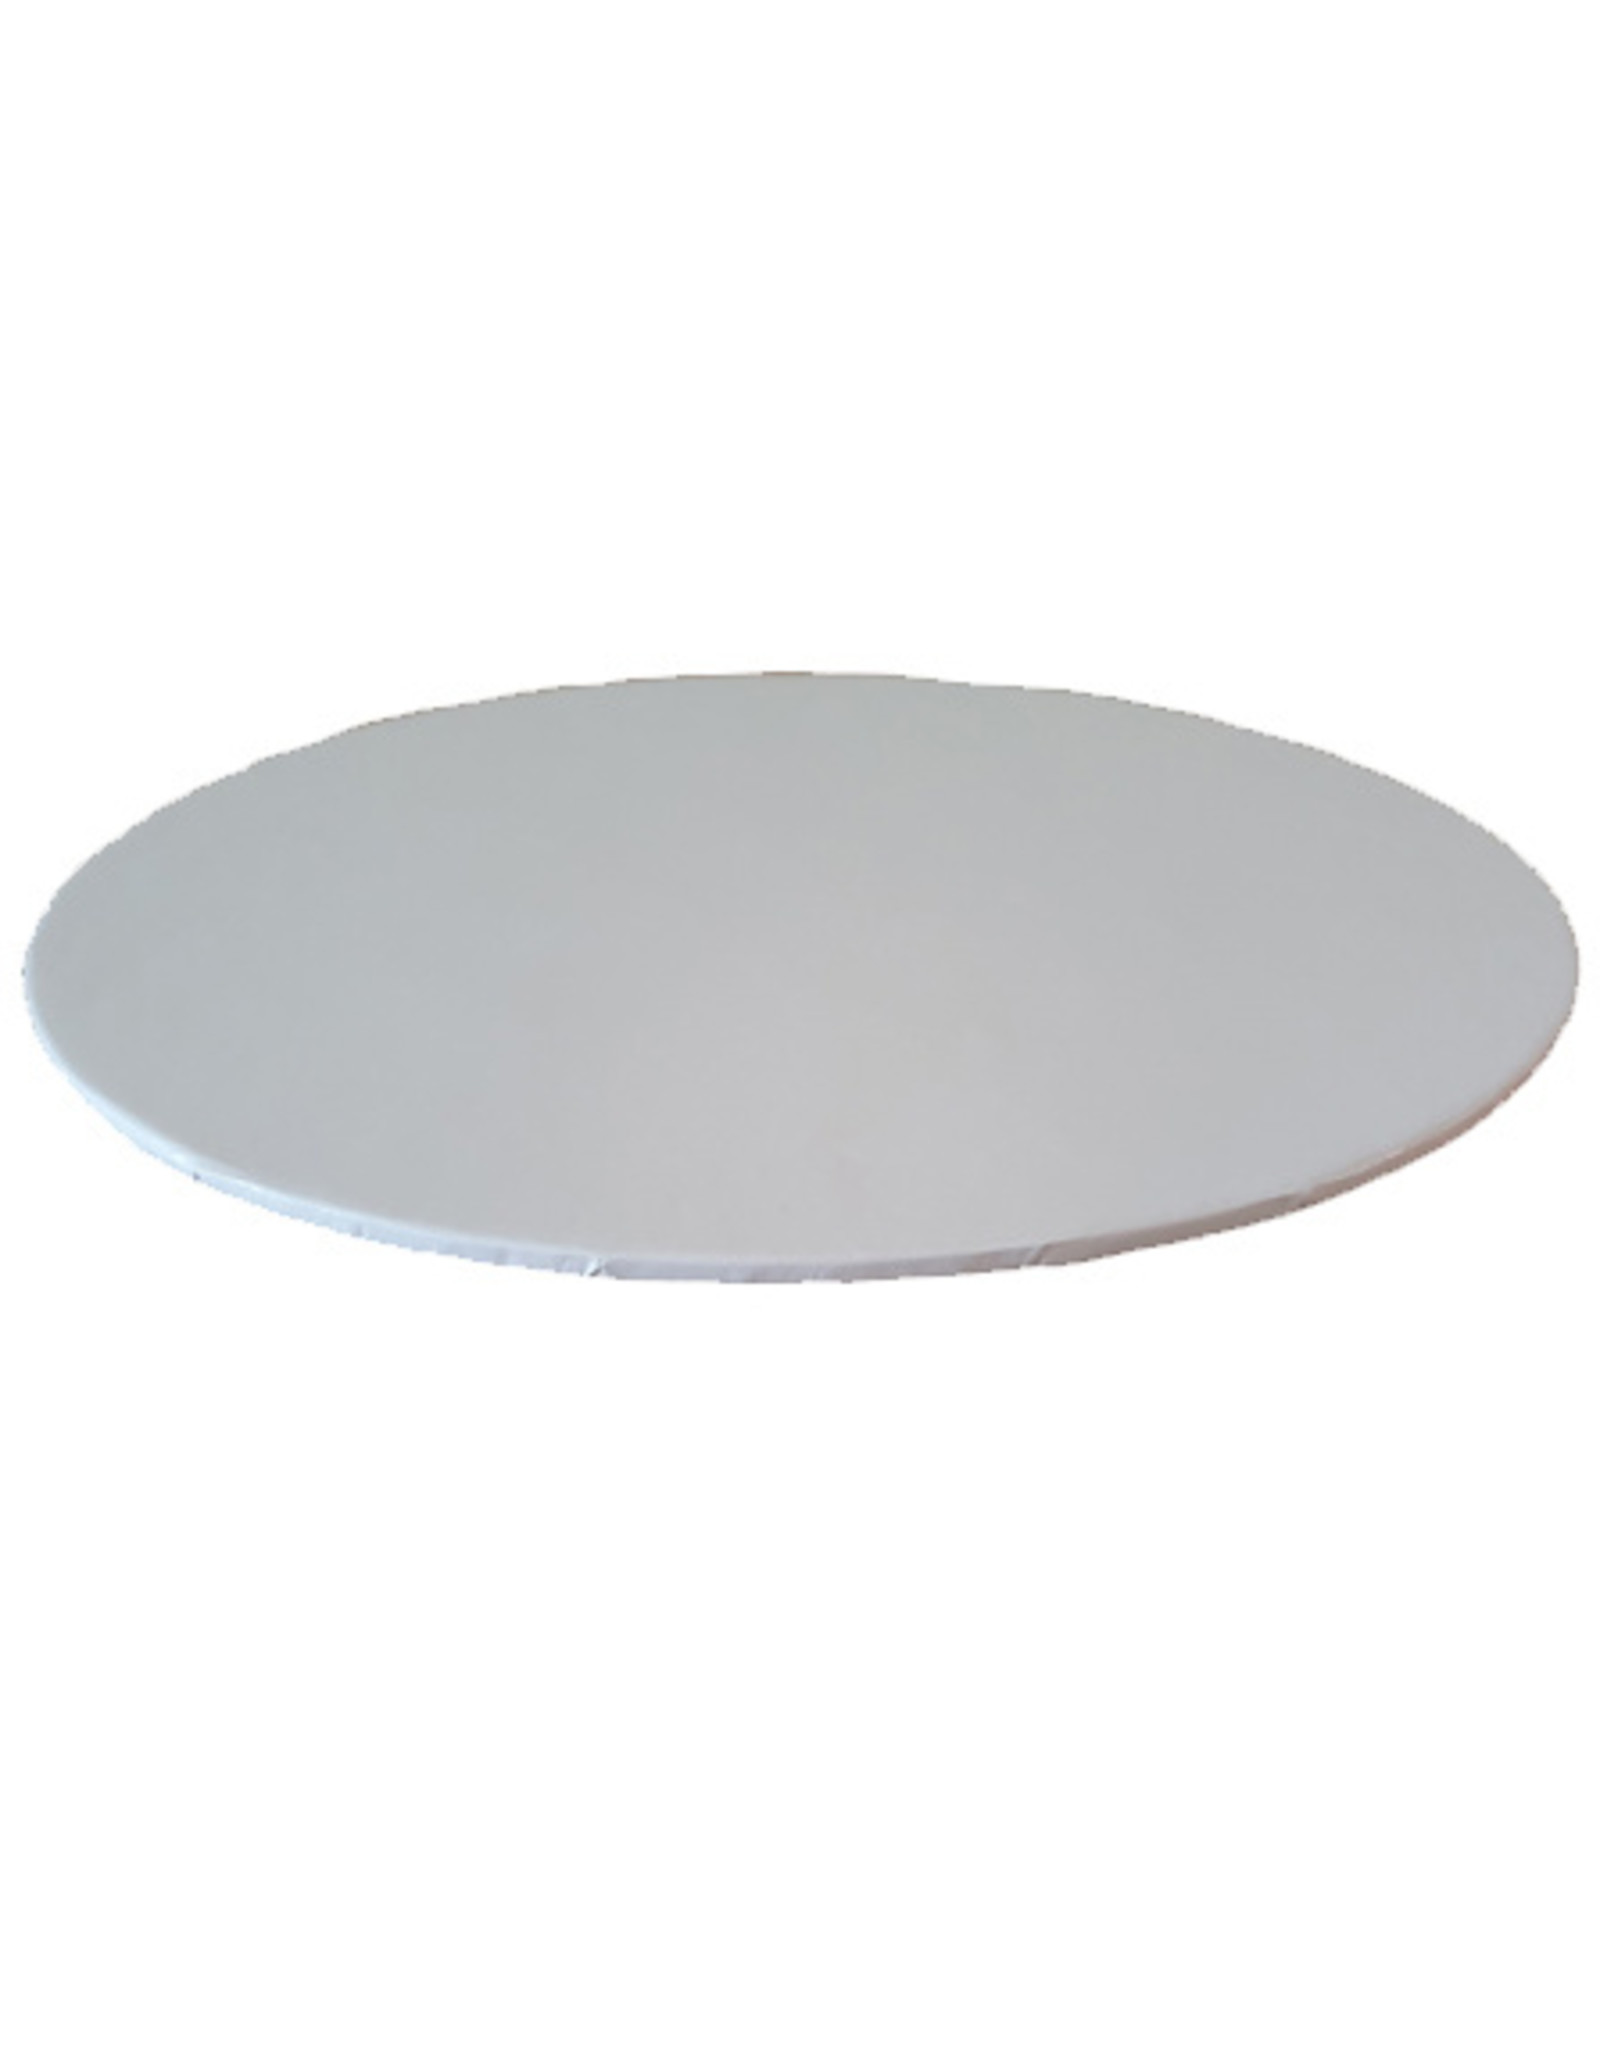 Cakeboards Ø222 mm - white (per 10 pieces)